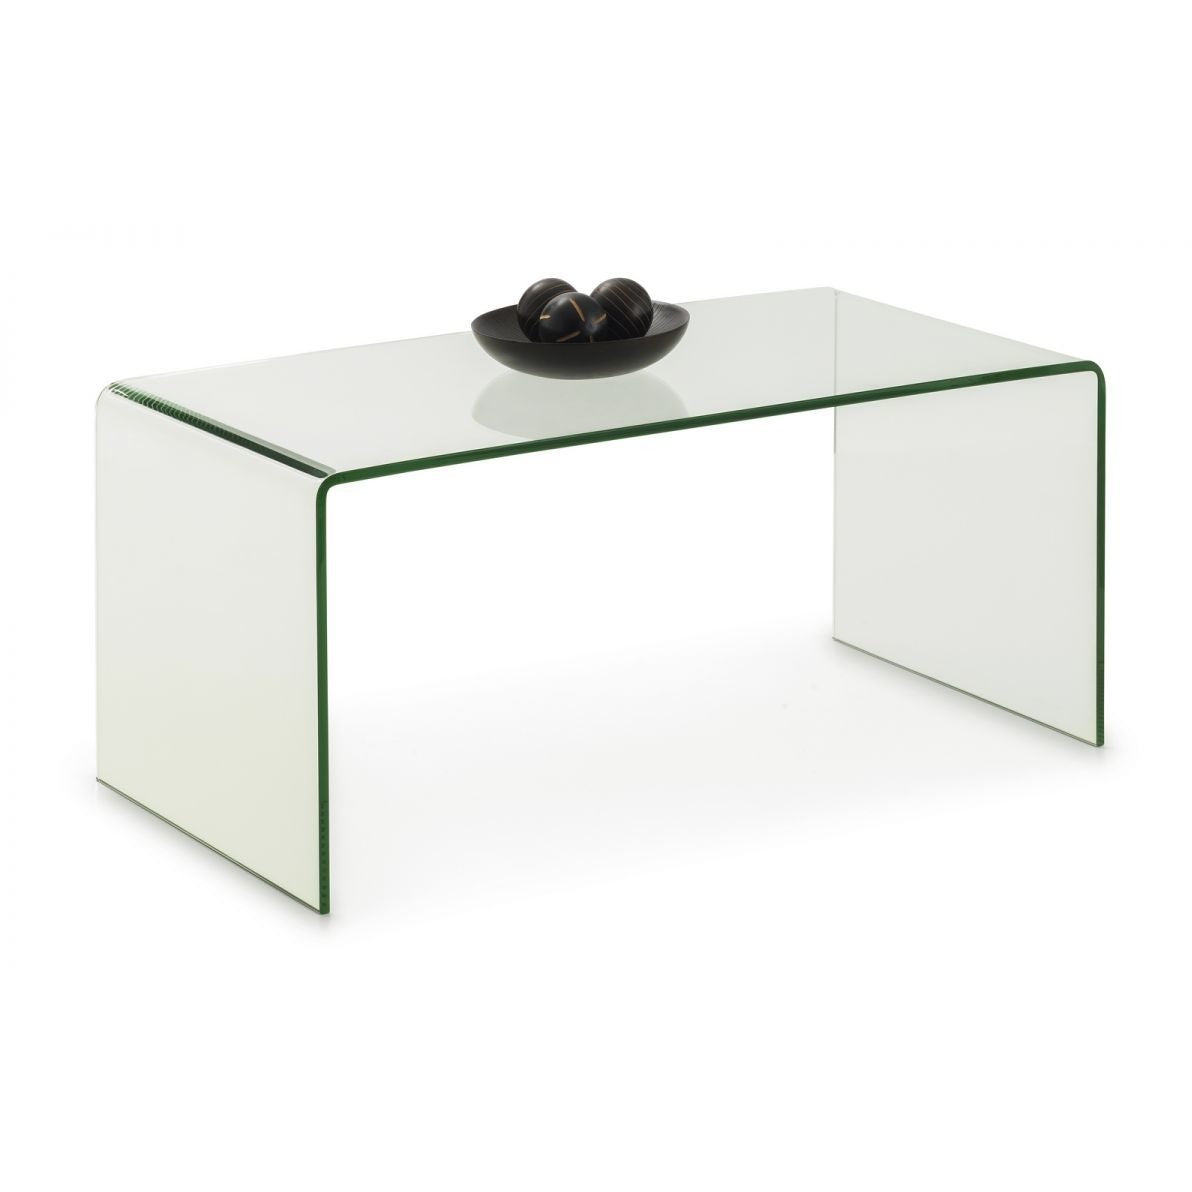 Amalfi Bent Glass Coffee Table - Perfectly Home Interiors